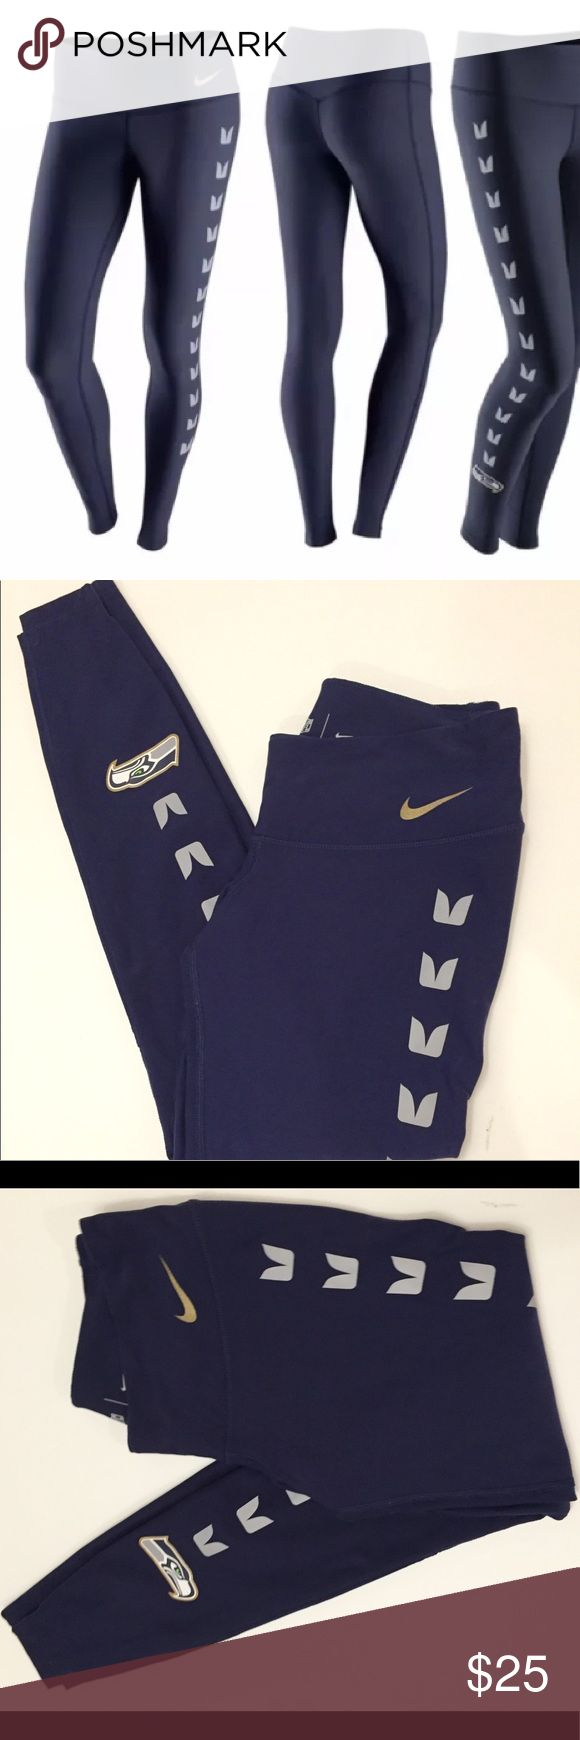 Nike DriFit Nfl Seattle Seahawks Leggings Small MAKE an offer  Dri FIT fabric to wick away sweat and help keep you dry and comfortable Mid-rise with a fit that hugs your body from hip to hem Nike's tightest fit for core support and full range of motion Flat seams help minimize irritation due to chafing Waistband tilts up in the back for a natural fit and streamlined appearance while helping to prevent roll-down Team print at lower leg Fabric: Dri-FIT 88% polyester/12% spandex Machine…